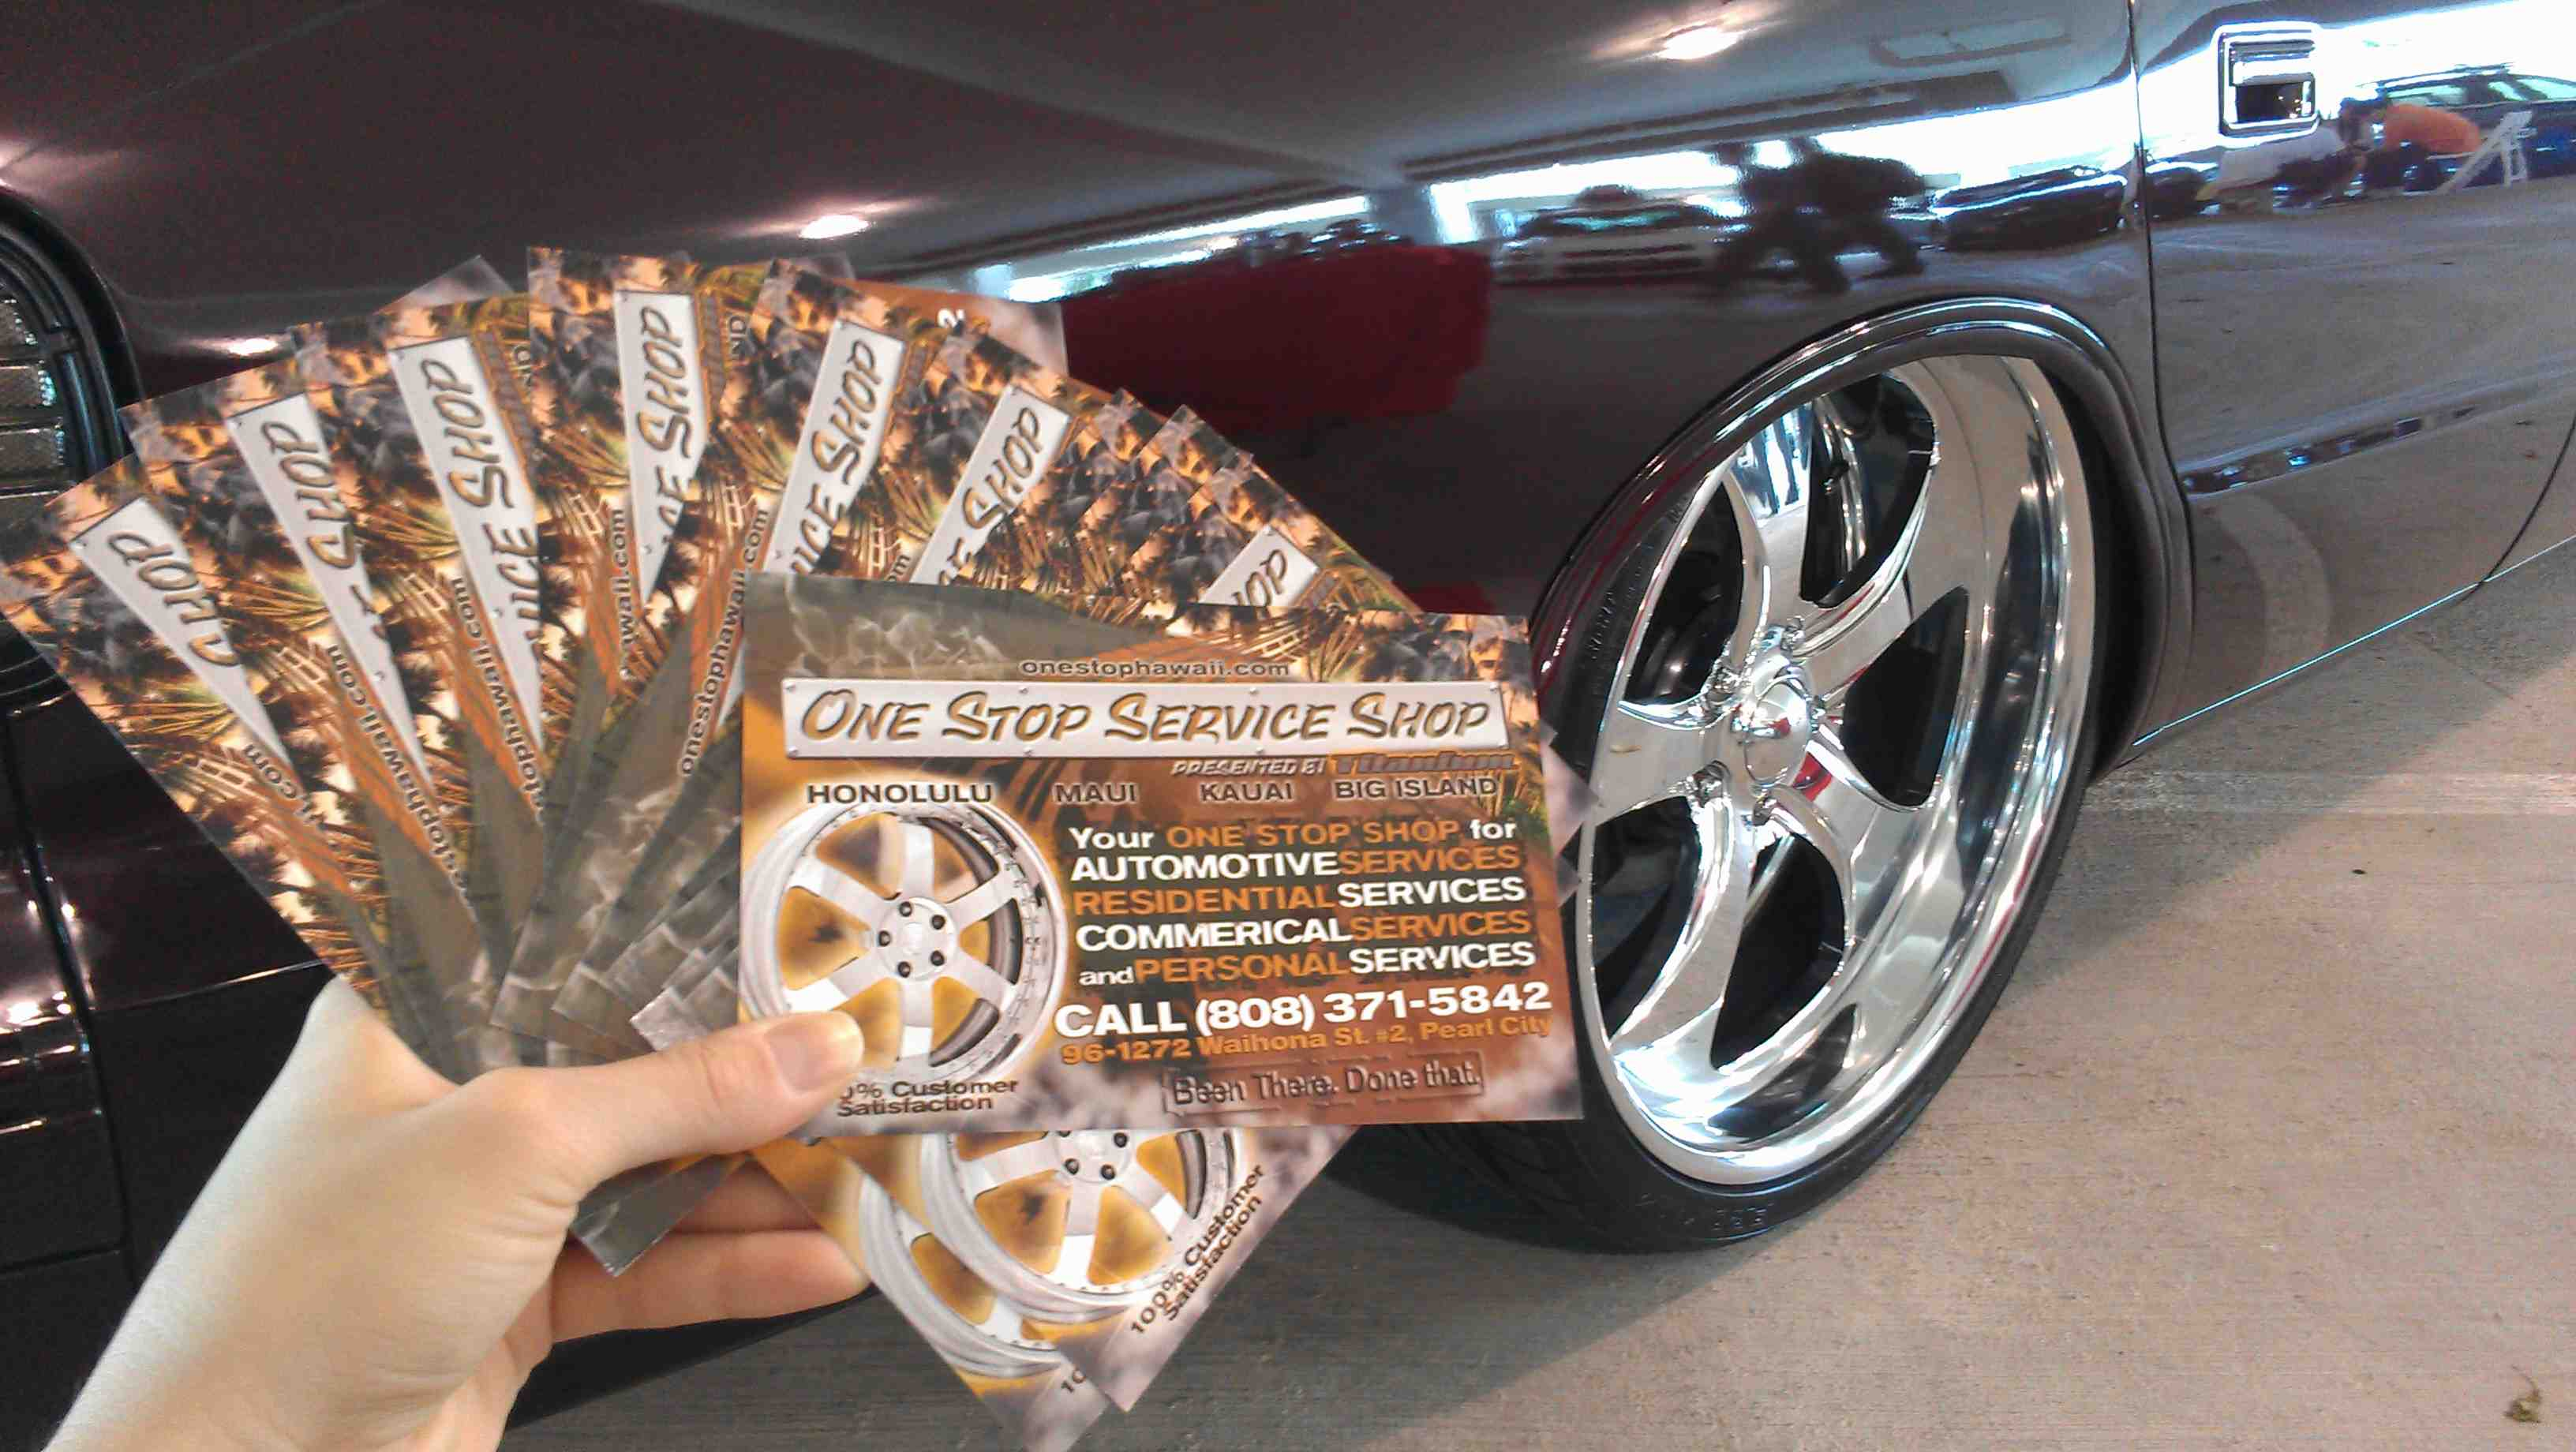 Hawaii Wheel Sale Rim Tire Package Specials August 2017 One